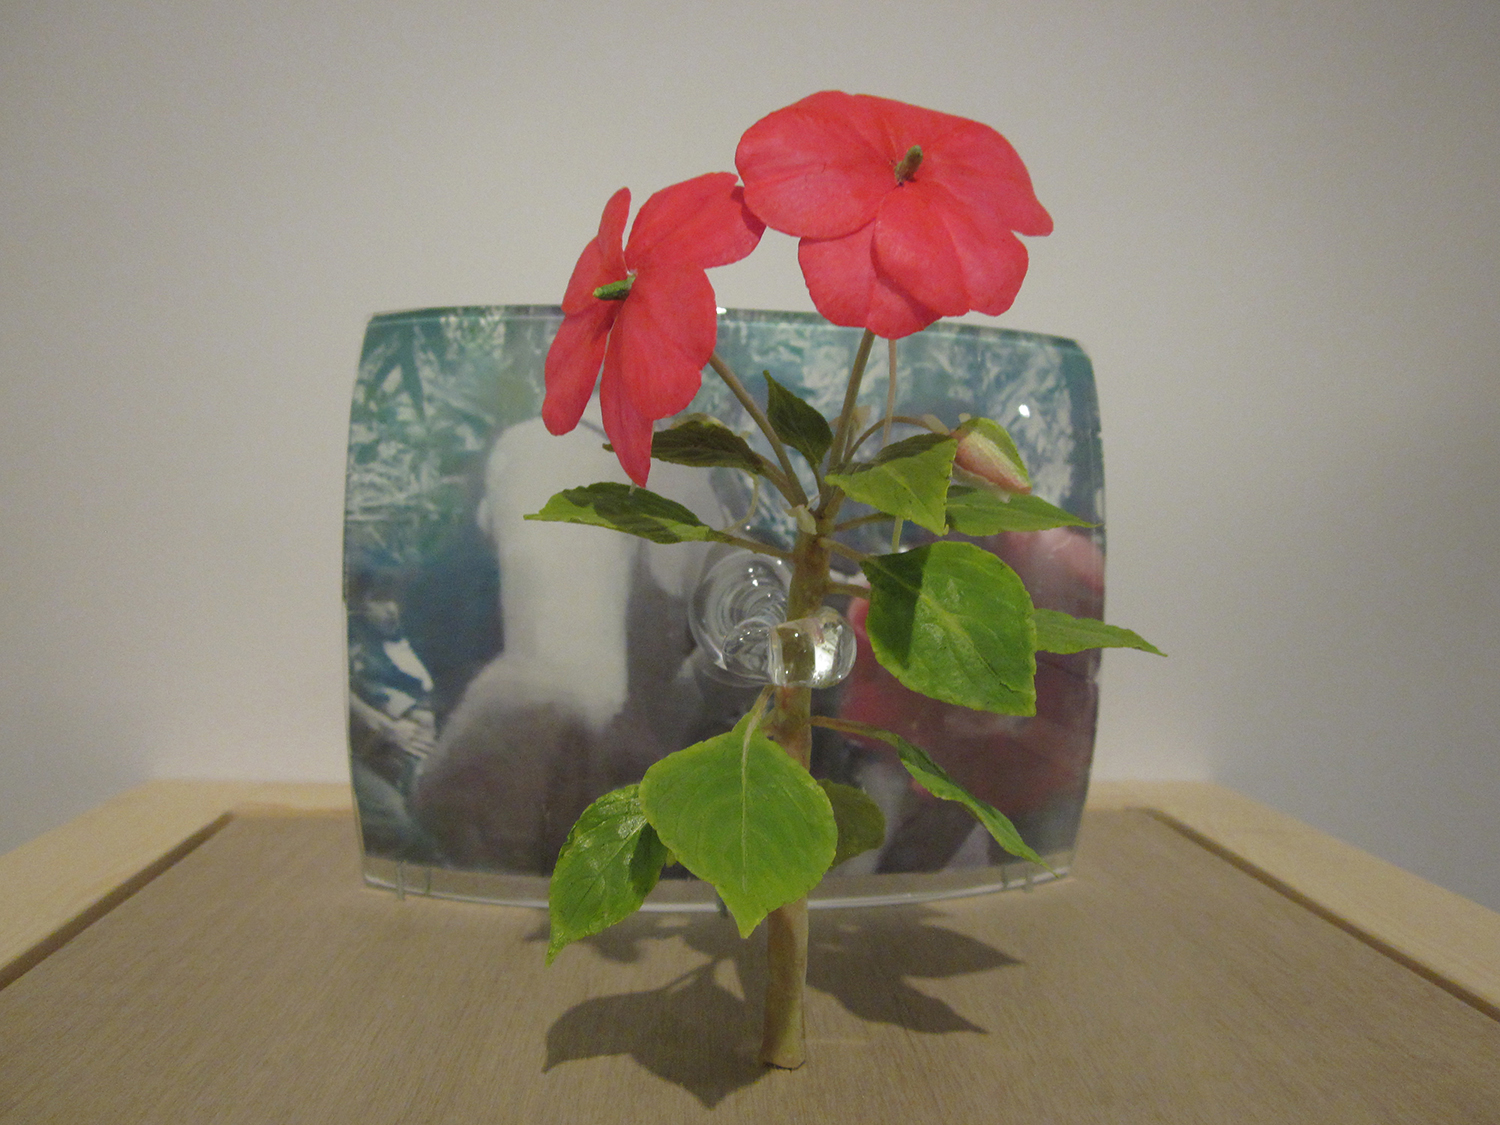 four seminal moments: no. 2 dancing guerrillas, 2013, beeswax plant model, hand blown glass, photo transfer, display case